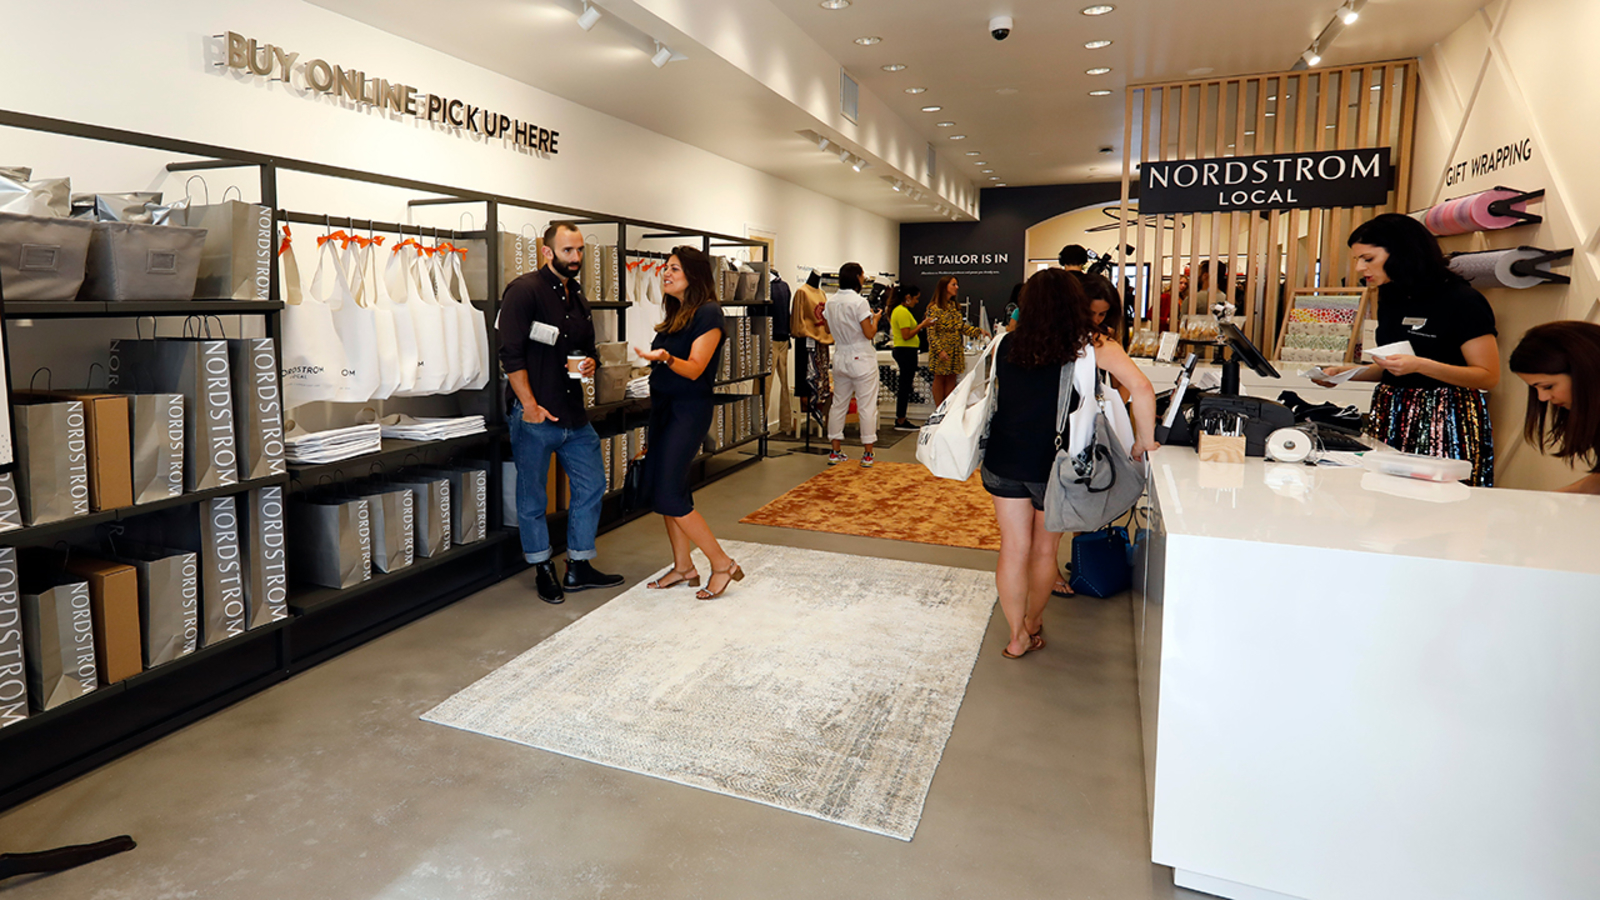 Nordstrom opens new store on Upper East Side with services but no merchandise